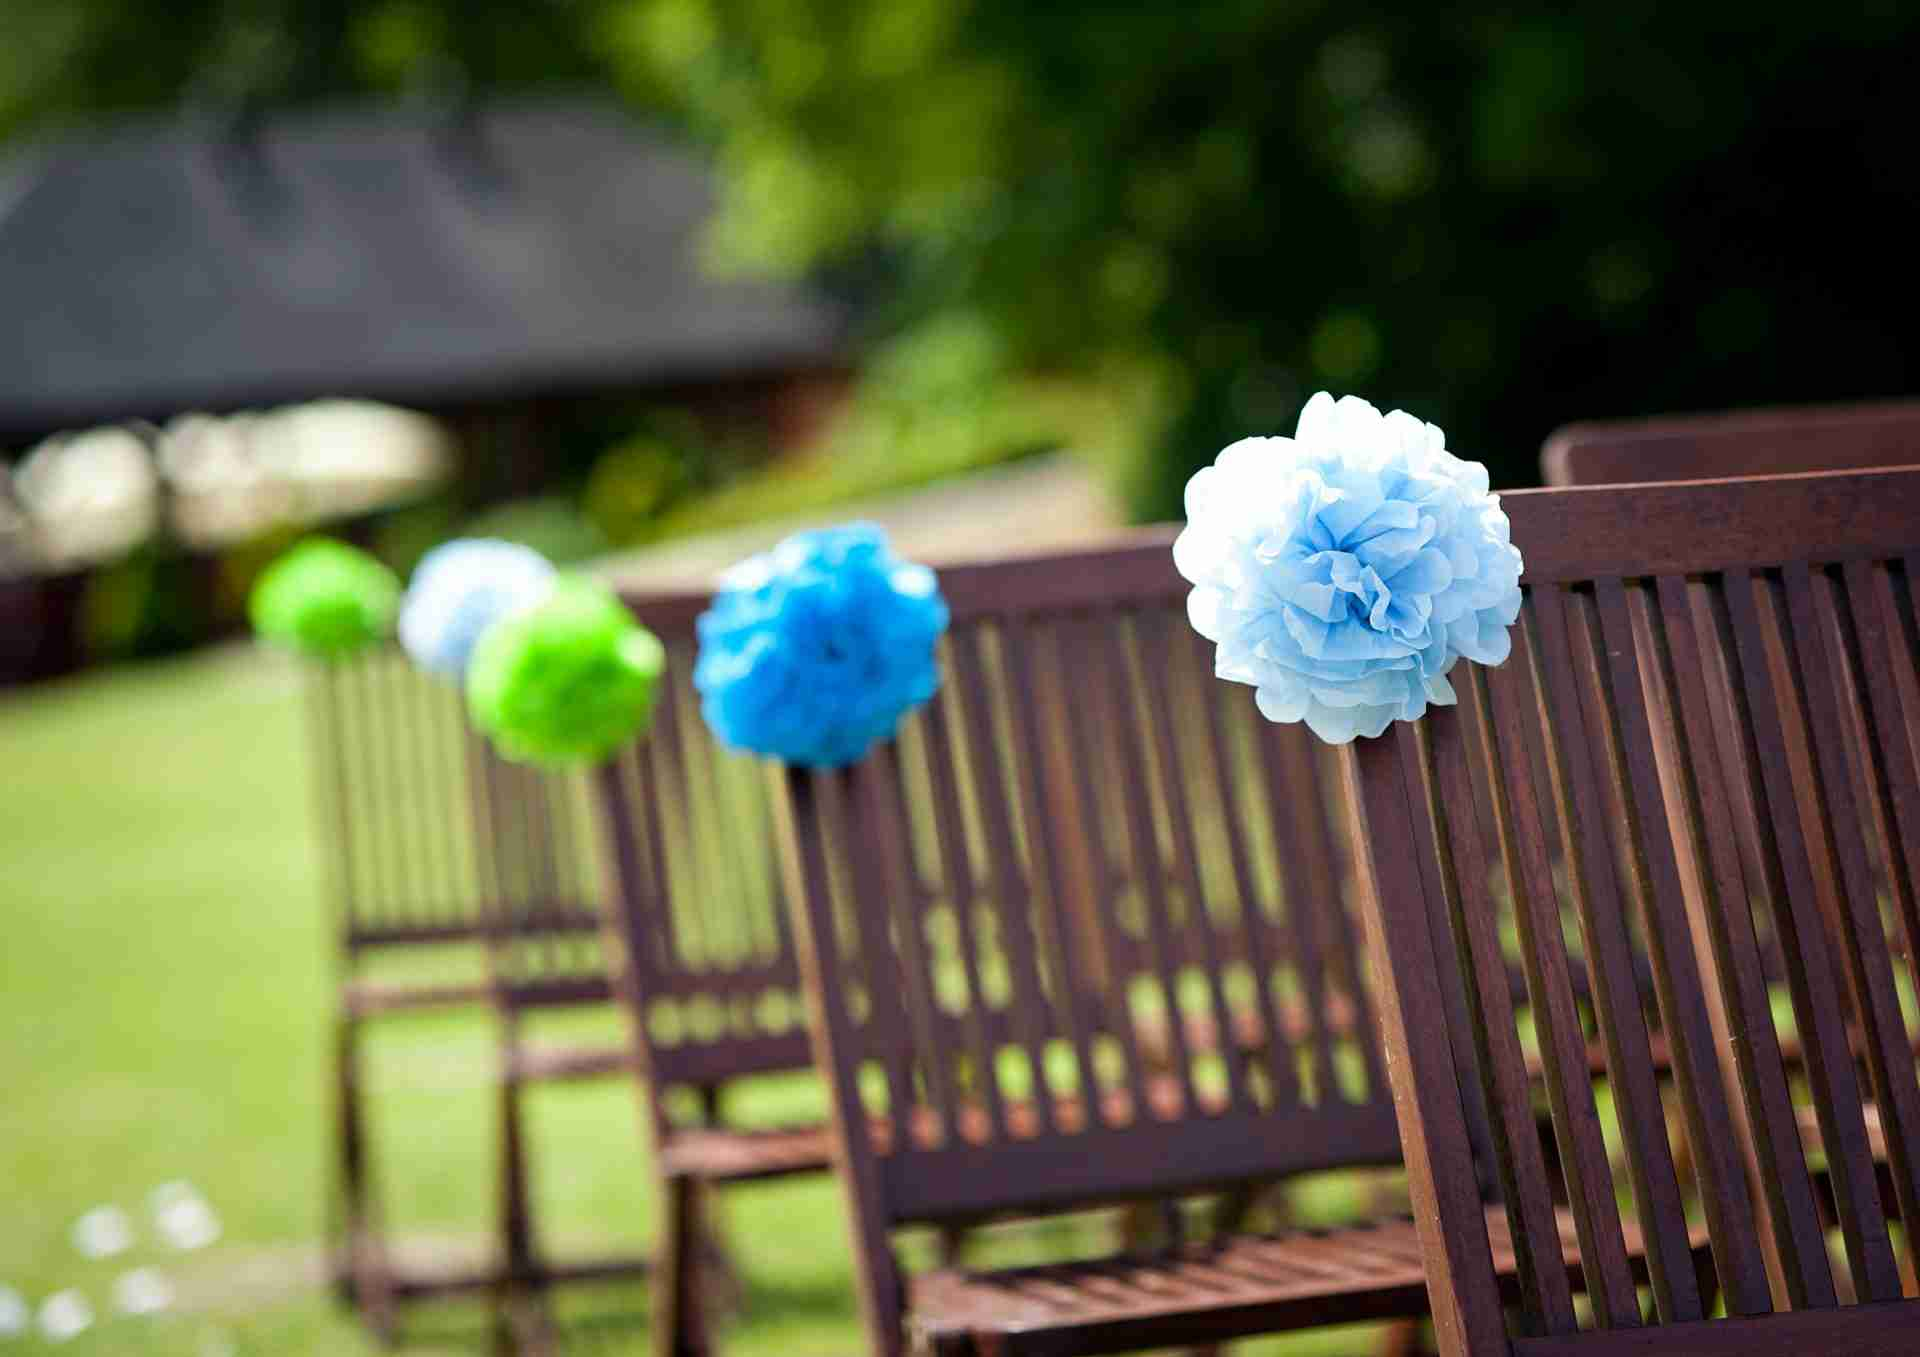 If you plan to allow weddings or events at your listing, consider using Proper's vacation rental insurance option.